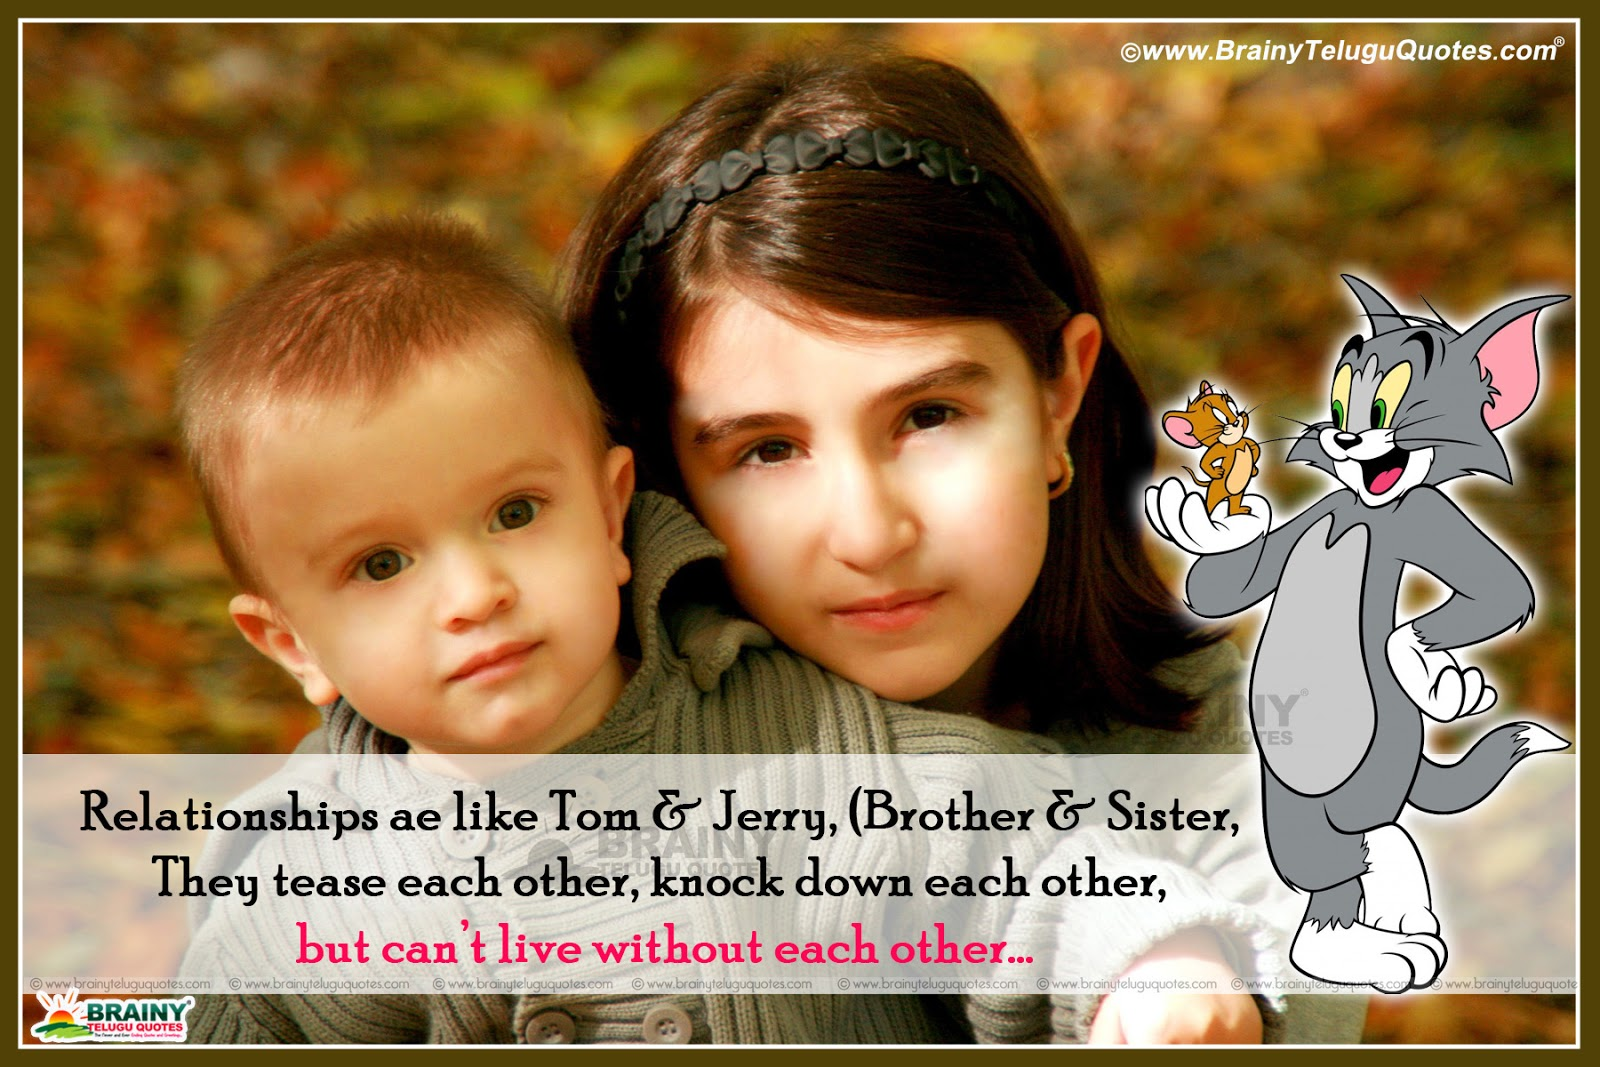 Best Sibling Quotes For Your Lovely Brother Or Sister With